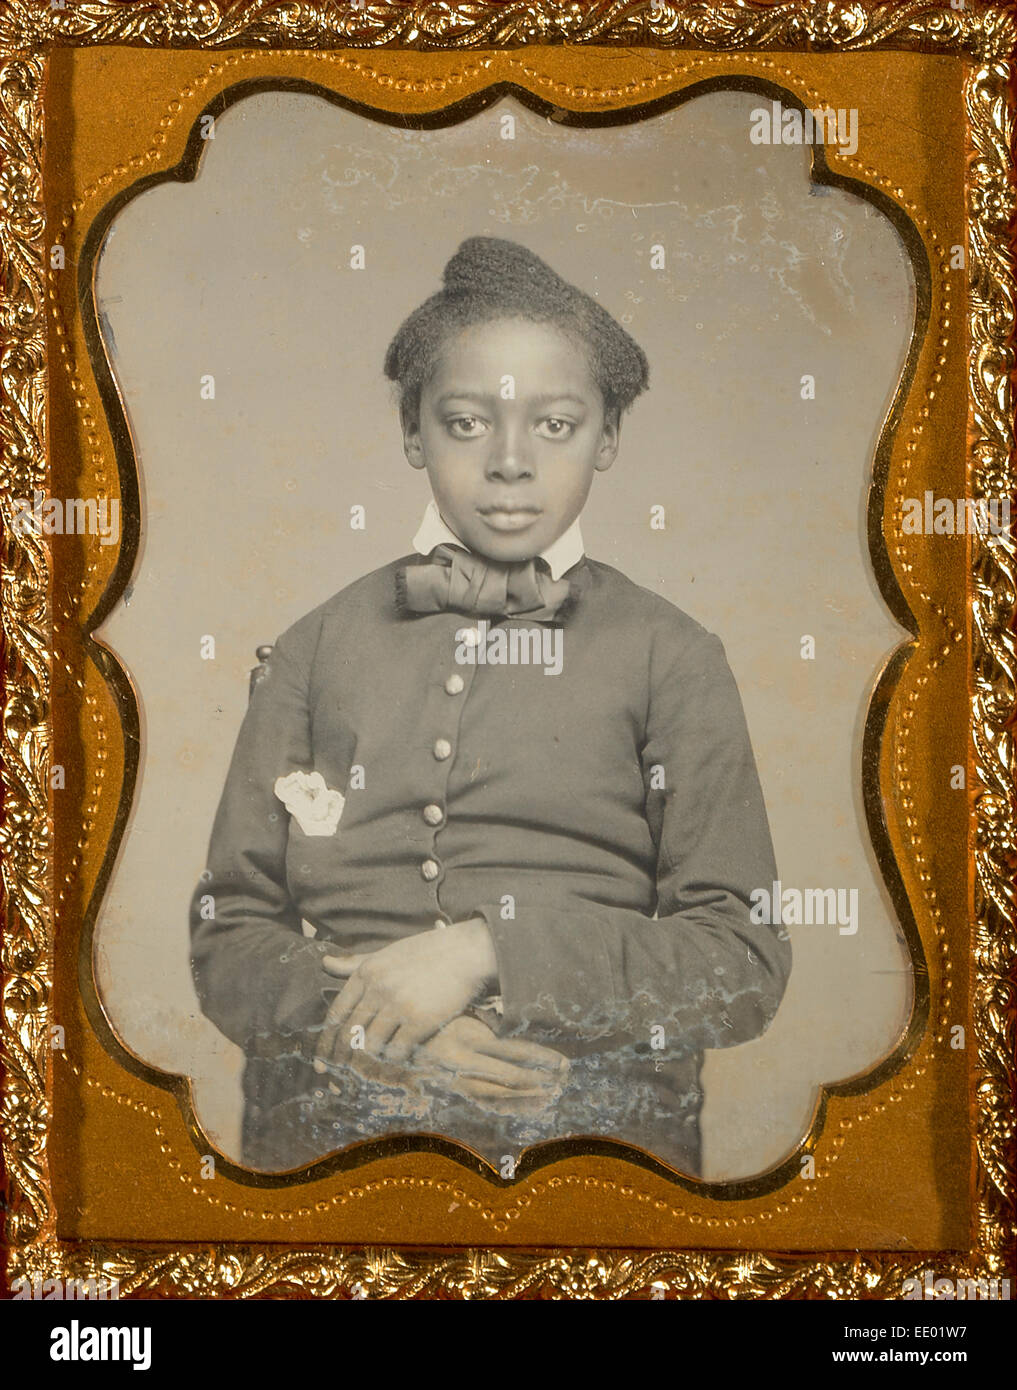 [Portrait of a Seated Black Child with Hands Crossed]; Unknown maker, American; about 1857 - 1858; Daguerreotype, - Stock Image